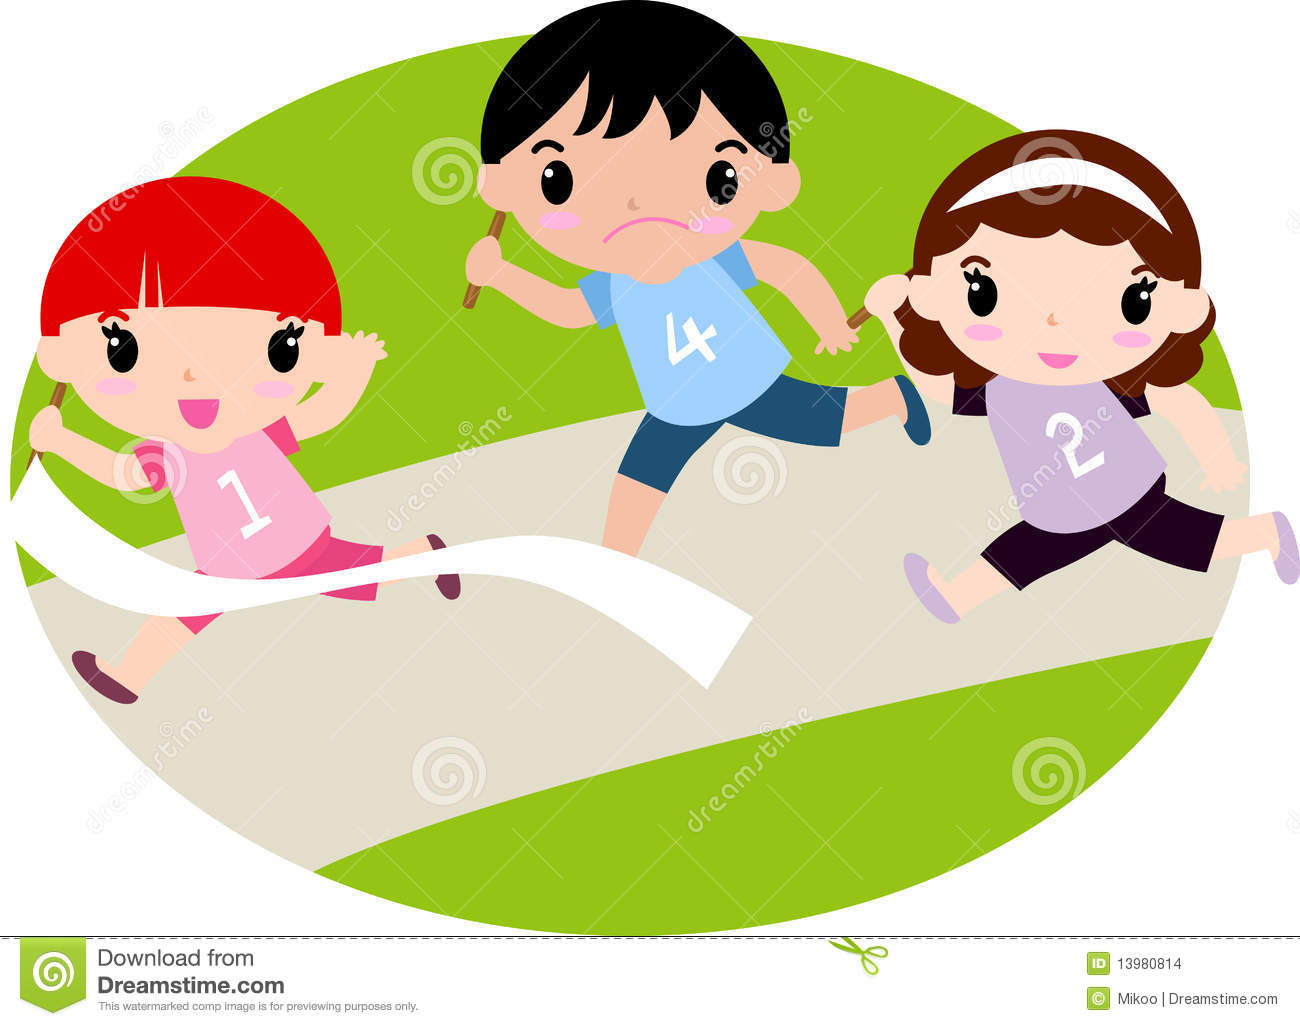 Running a download free. Race clipart child run